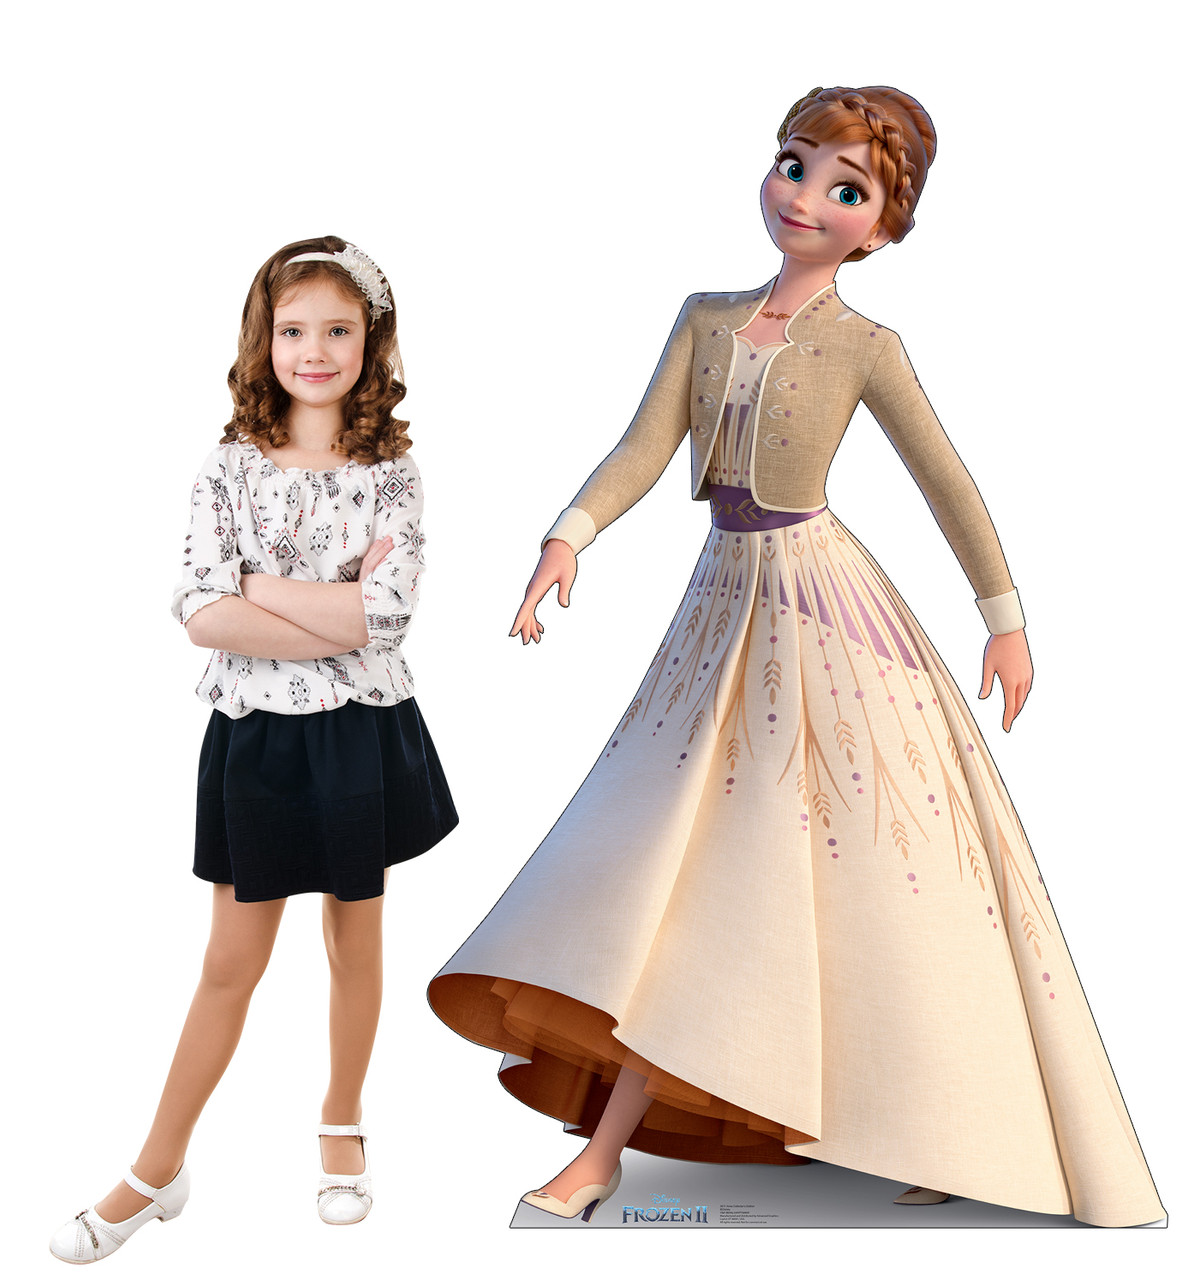 Life-size cardboard standee of Anna (Collector's Edition) from Disney's Frozen 2 with model.